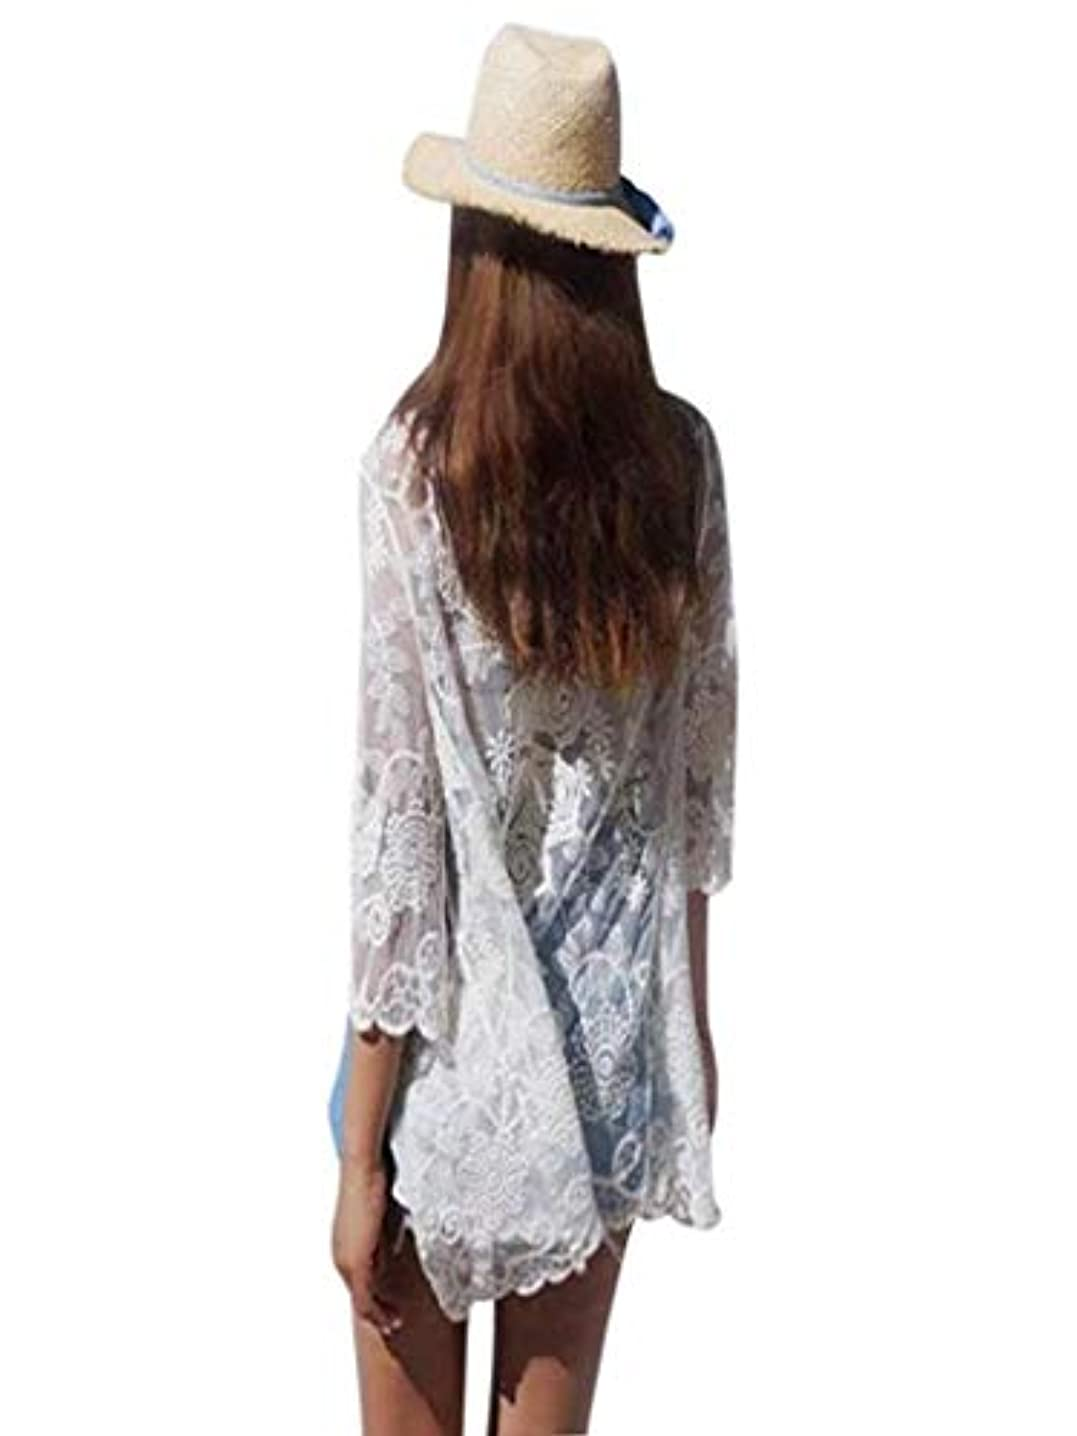 Feitong Women's Summer Lace Beach Loose Shawl Kimono Cardigan Top Cover up